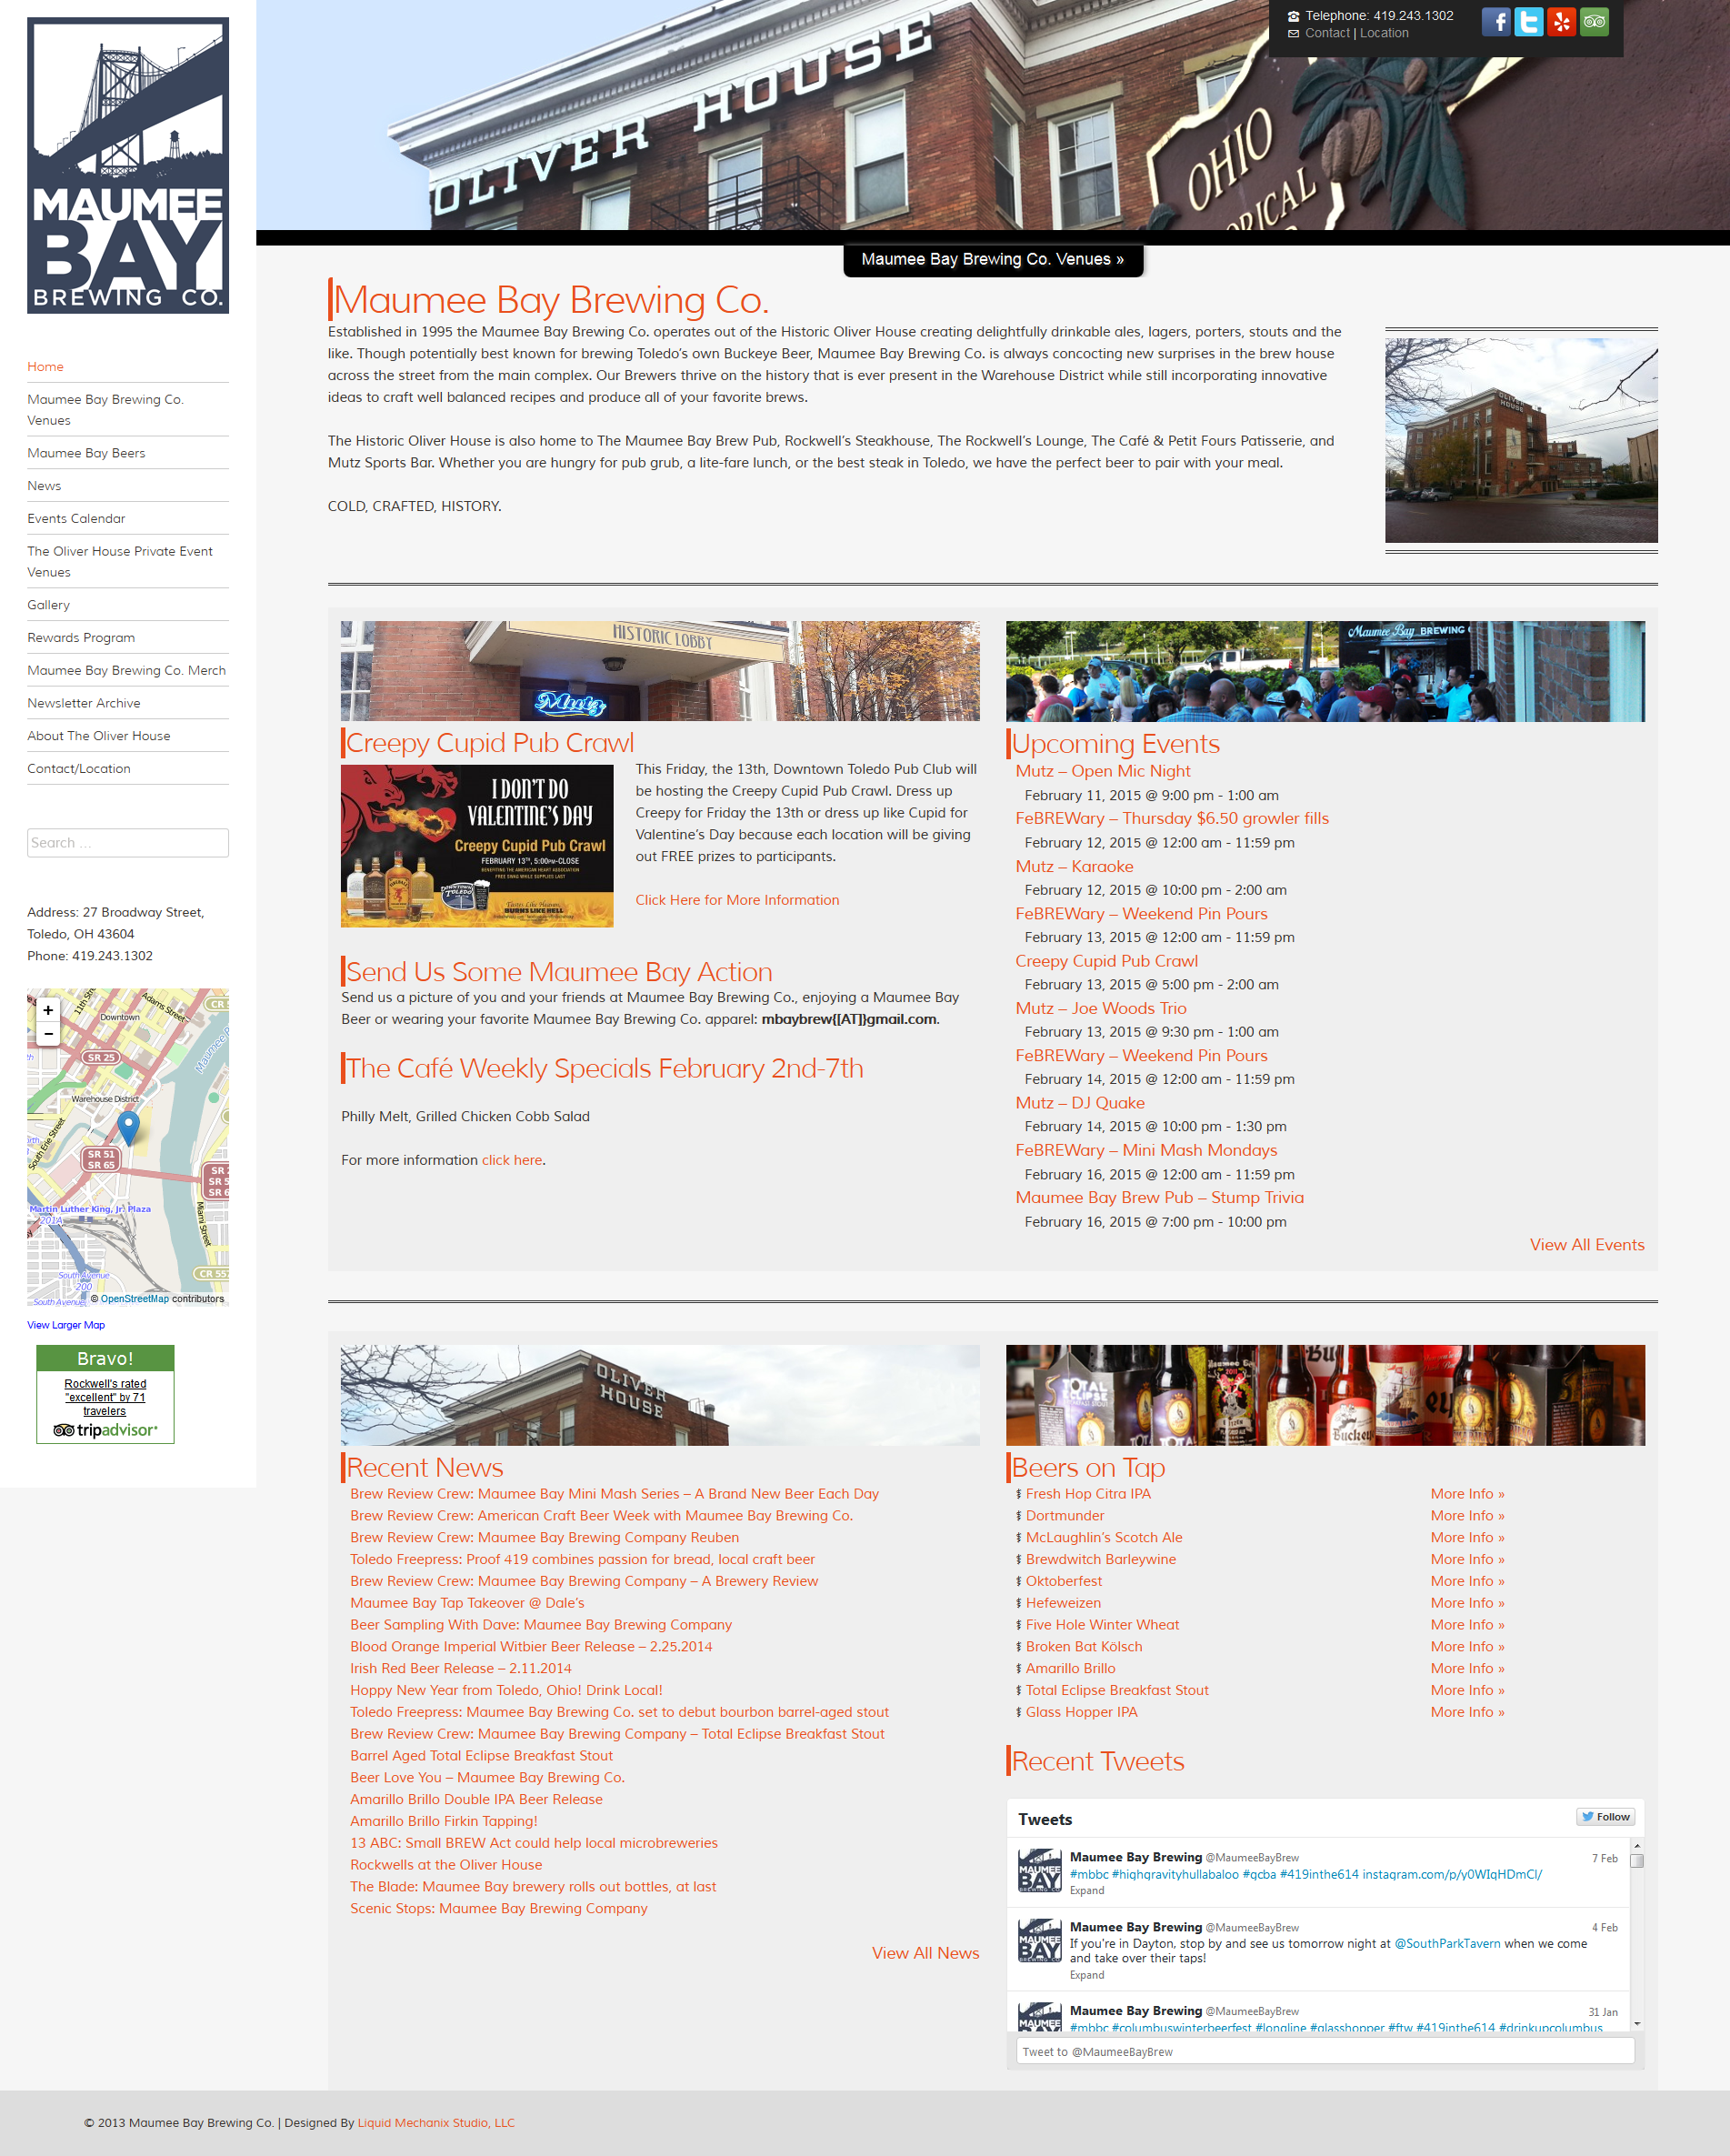 Maumee_Bay_Brewing_Co._Maumee_Bay_Brewing_Co._-_2015-02-12_18.42.11.png